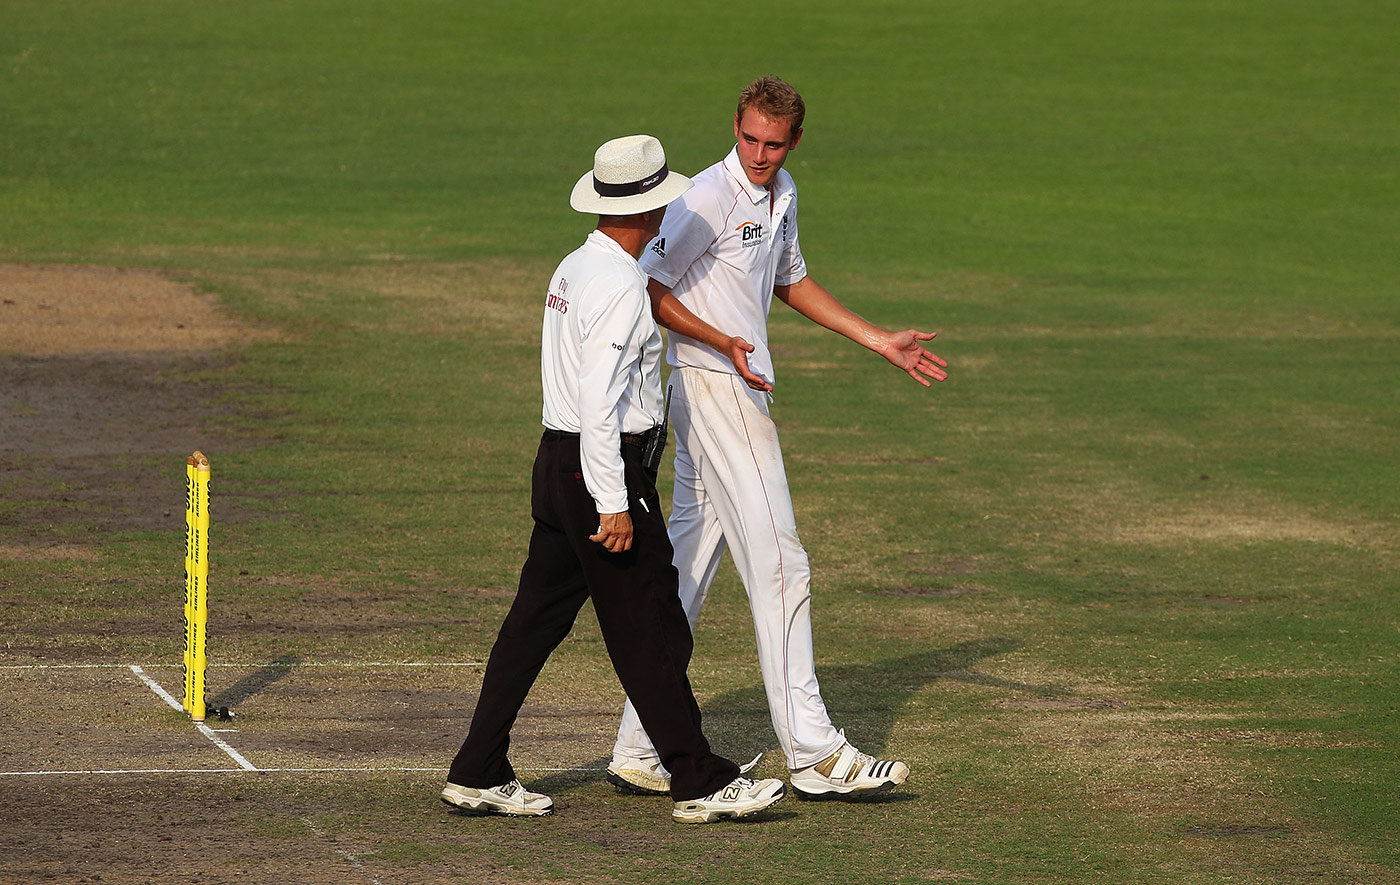 Stuart Broad's way of keeping umpires on-side might account for his having got away with infractions on a few occasions